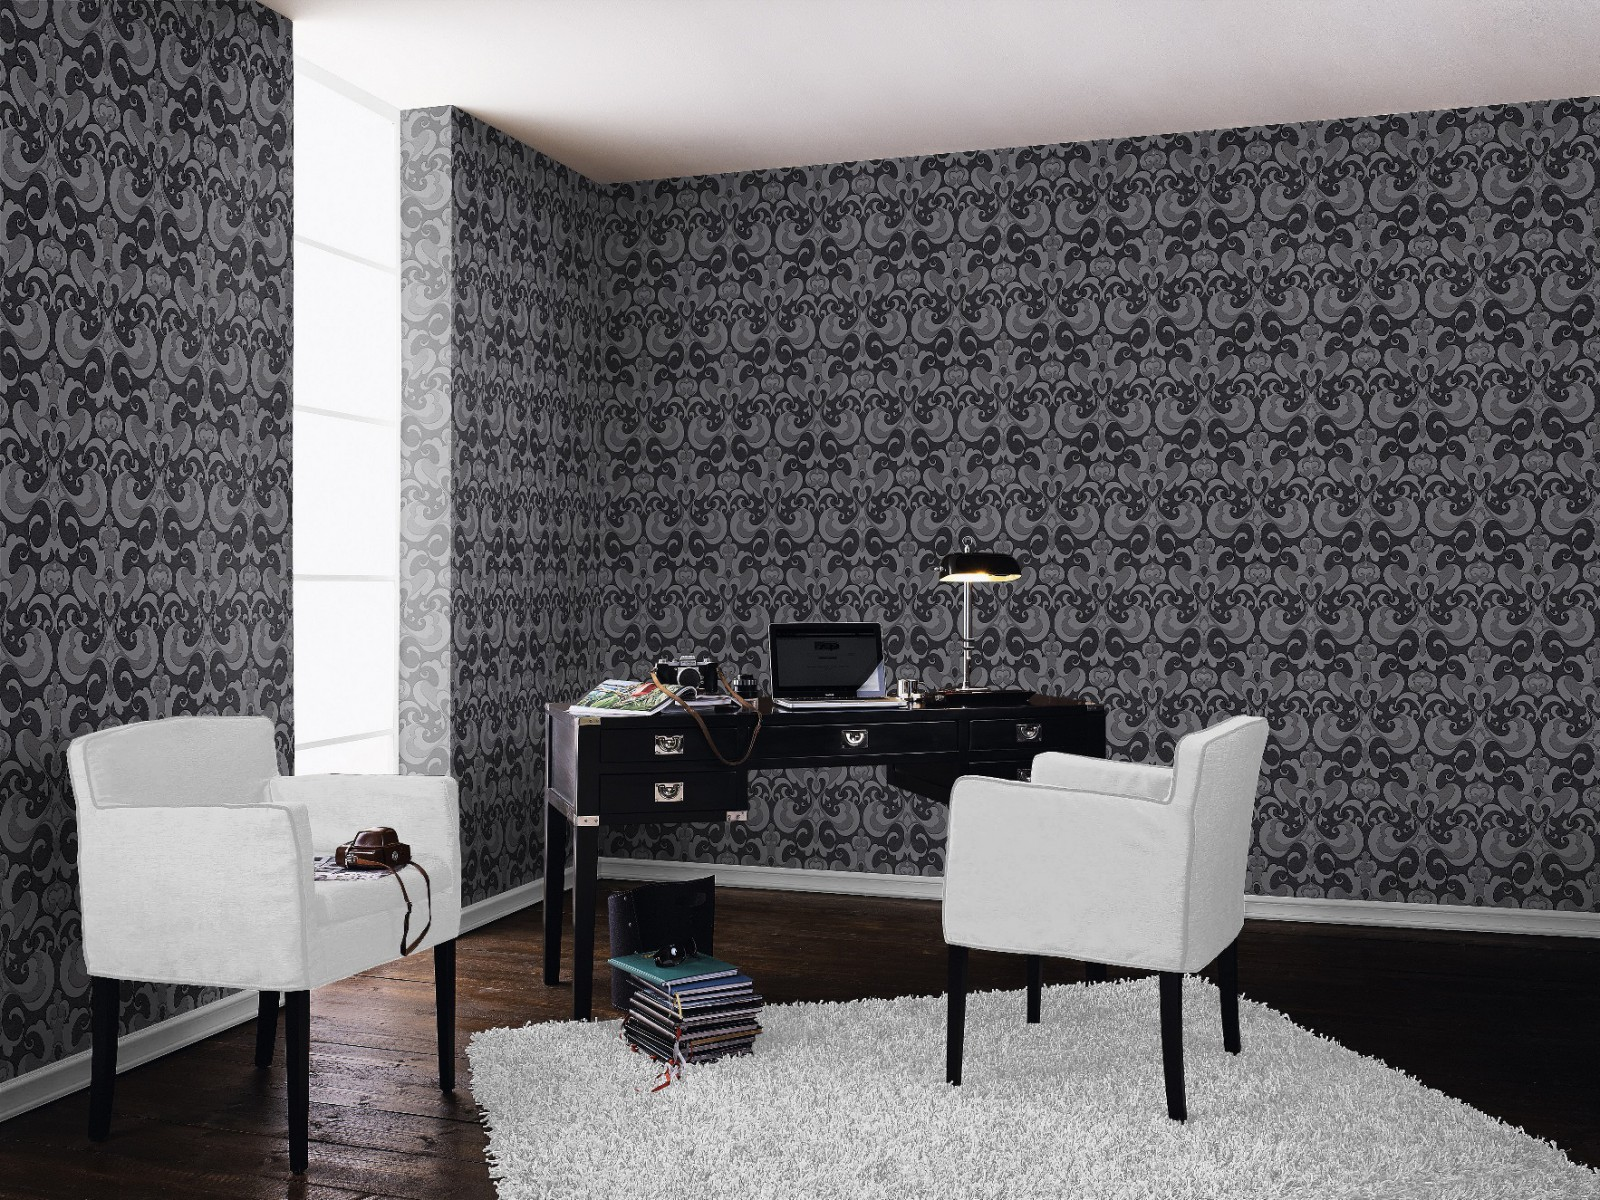 tapete rasch ornamente 507423 schwarz silber. Black Bedroom Furniture Sets. Home Design Ideas